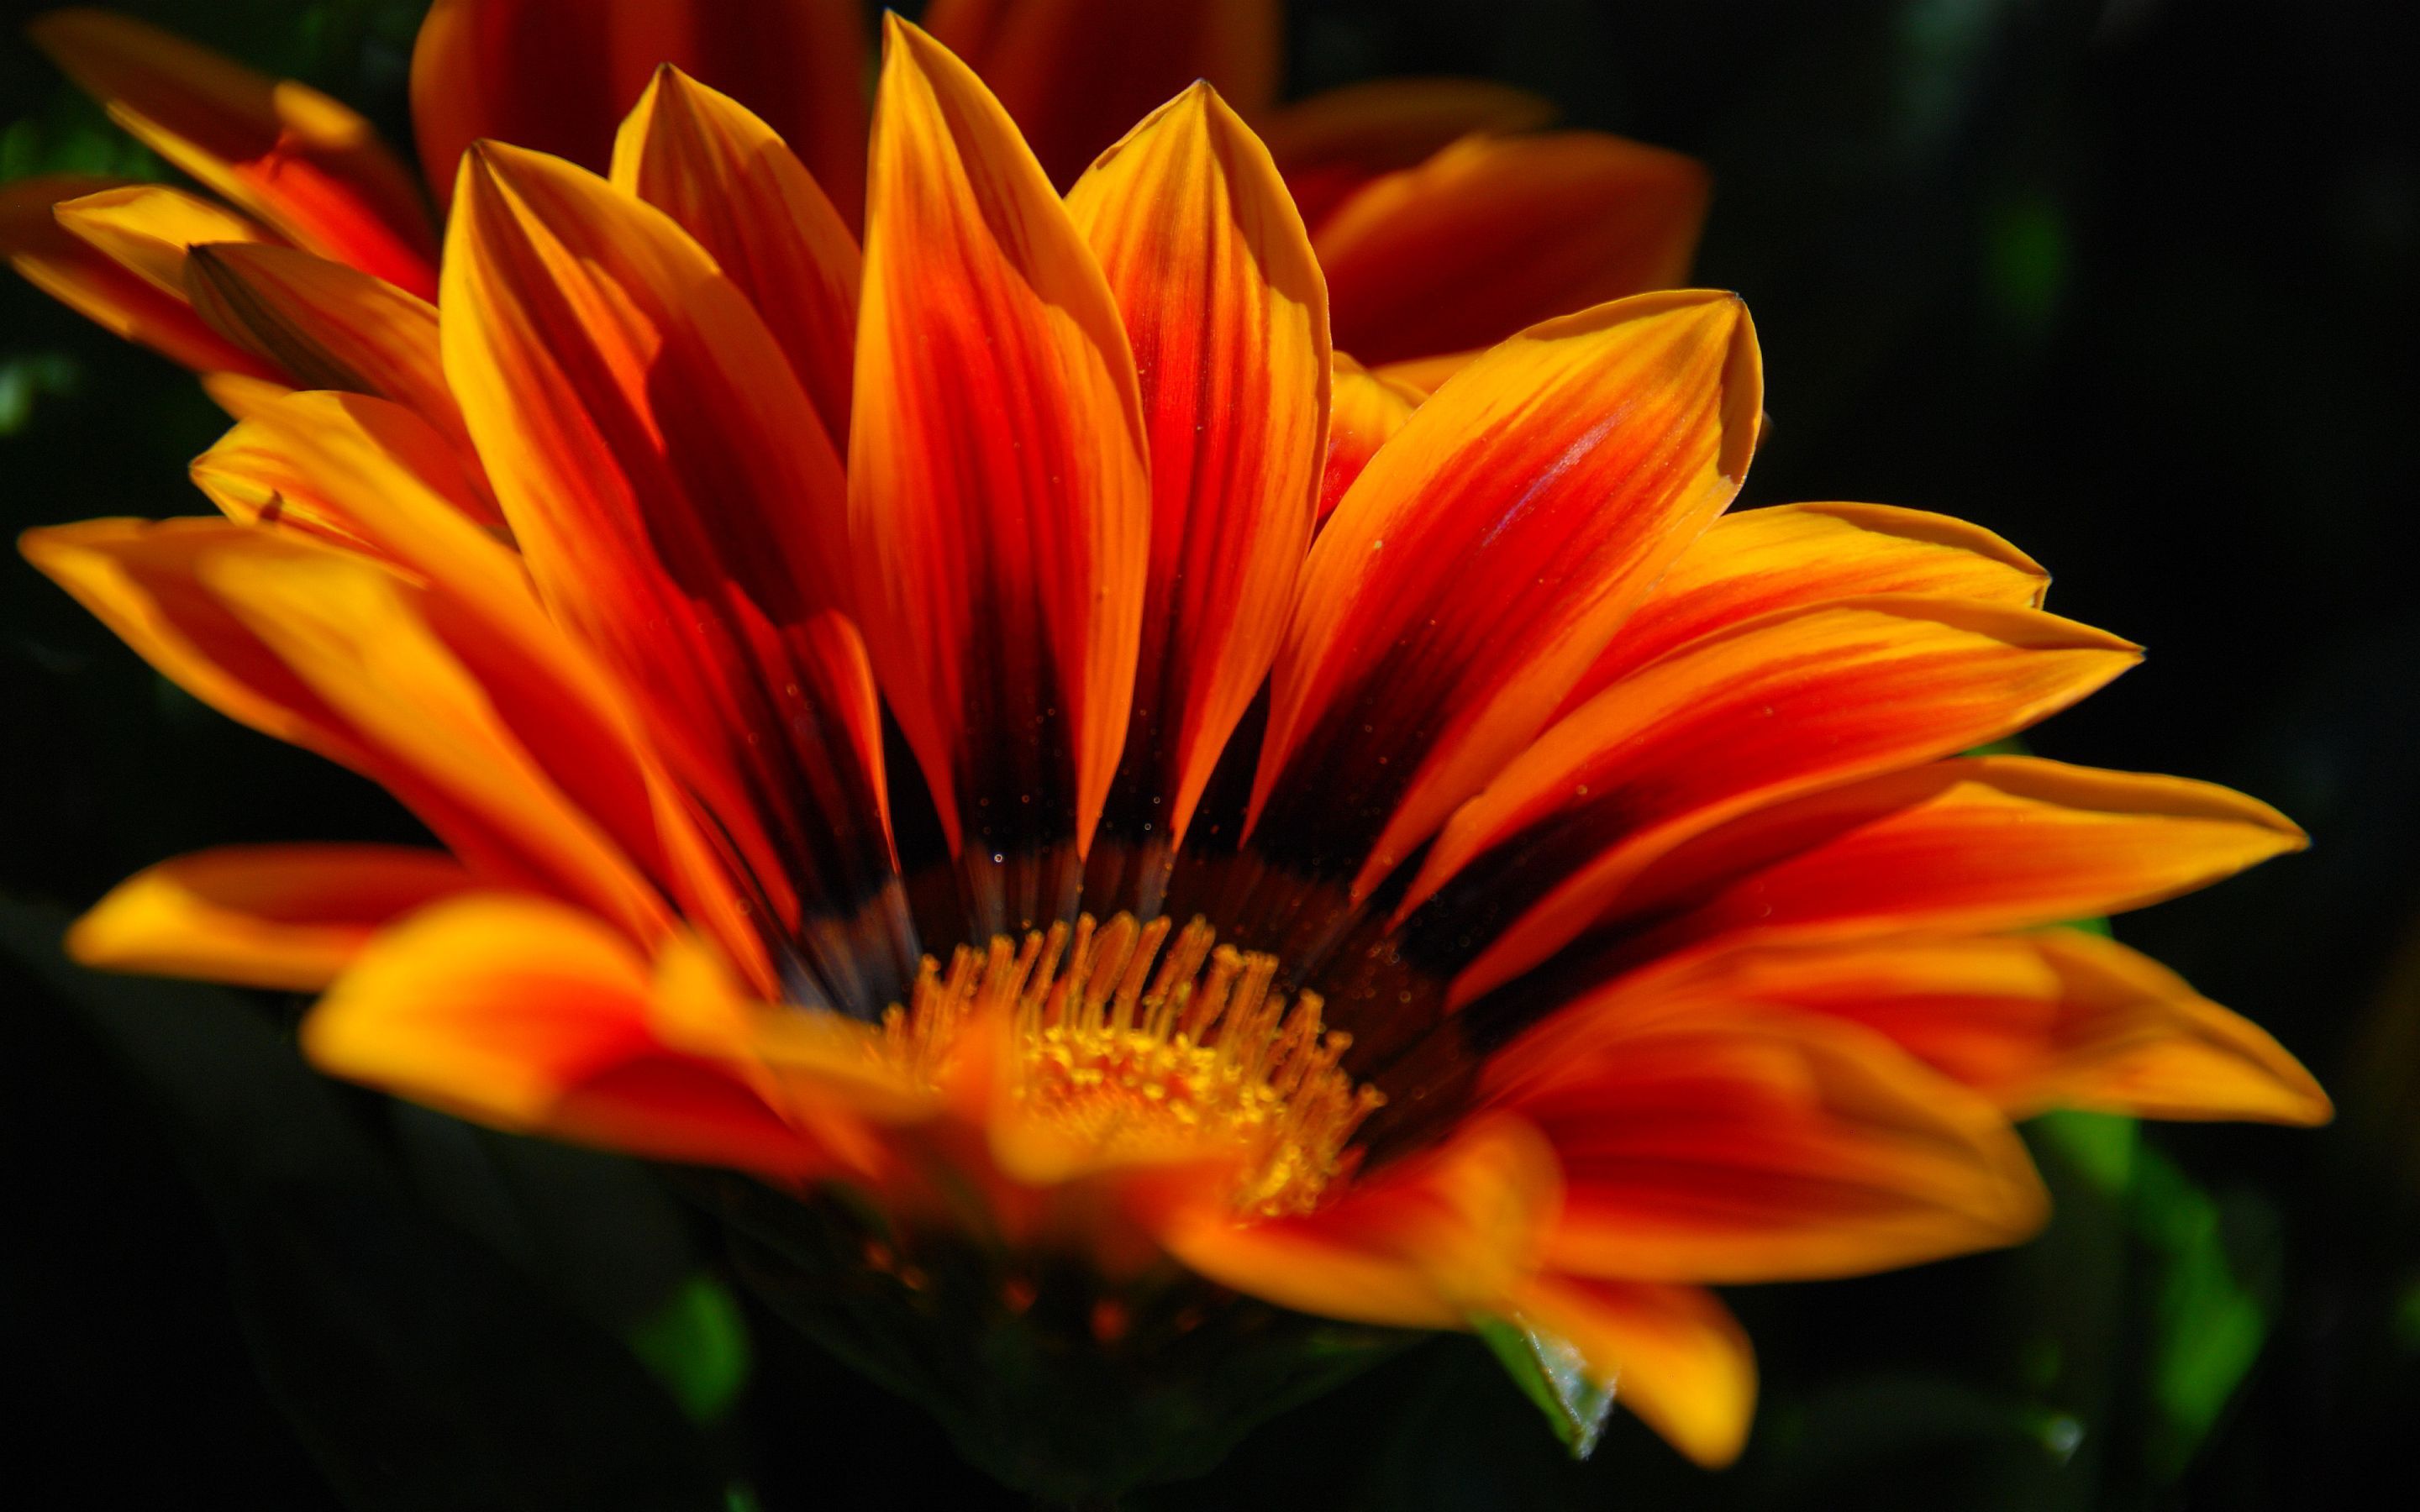 HD wallpaper download | Orange flower hd Wallpapers ...